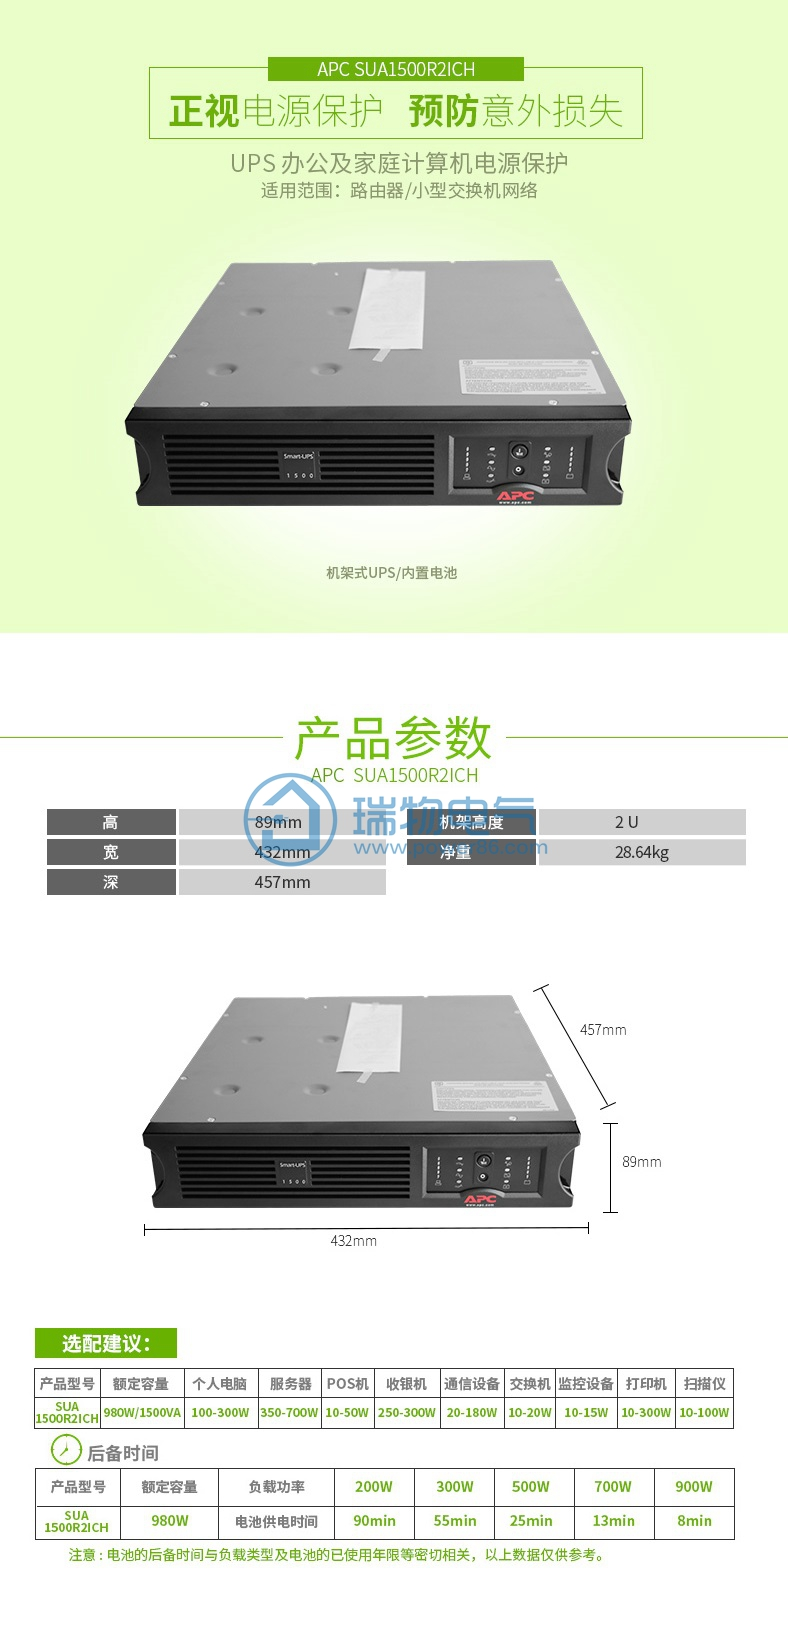 产品介绍http://www.power86.com/rs1/ups/14/128/678/678_c0.jpg